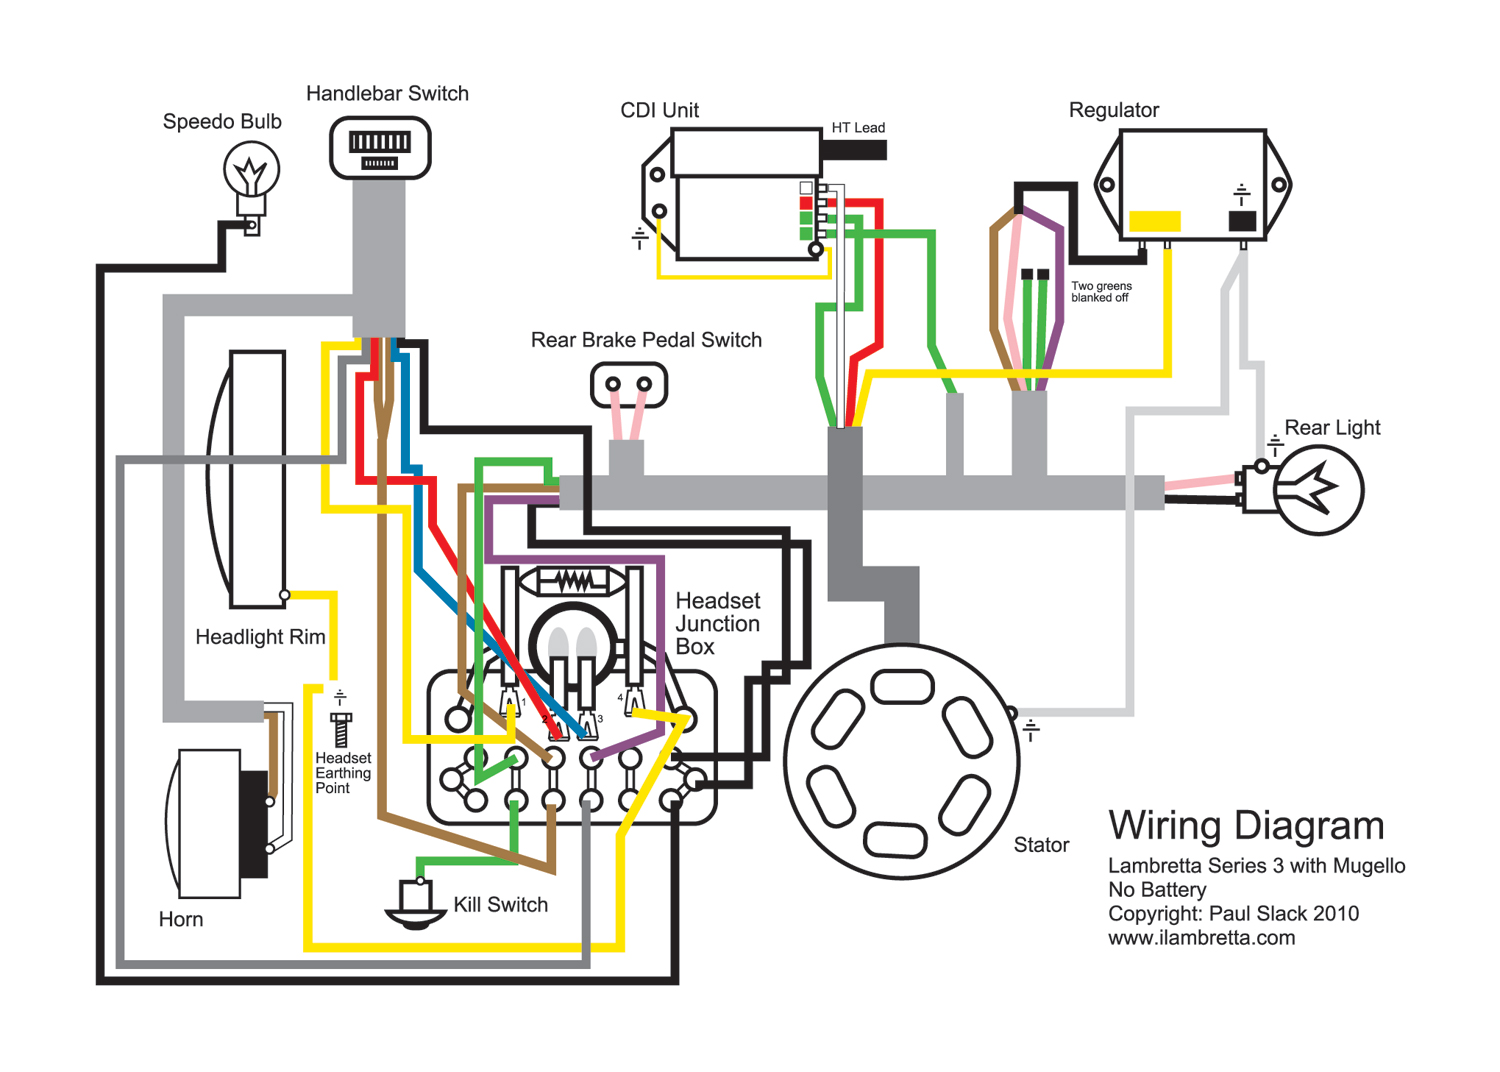 Tator Wiring Diagram Not Lossing Omc 4 3 Stator Wire Data Schema Rh 21 Diehoehle Derloewen De Schematic Residential Electrical